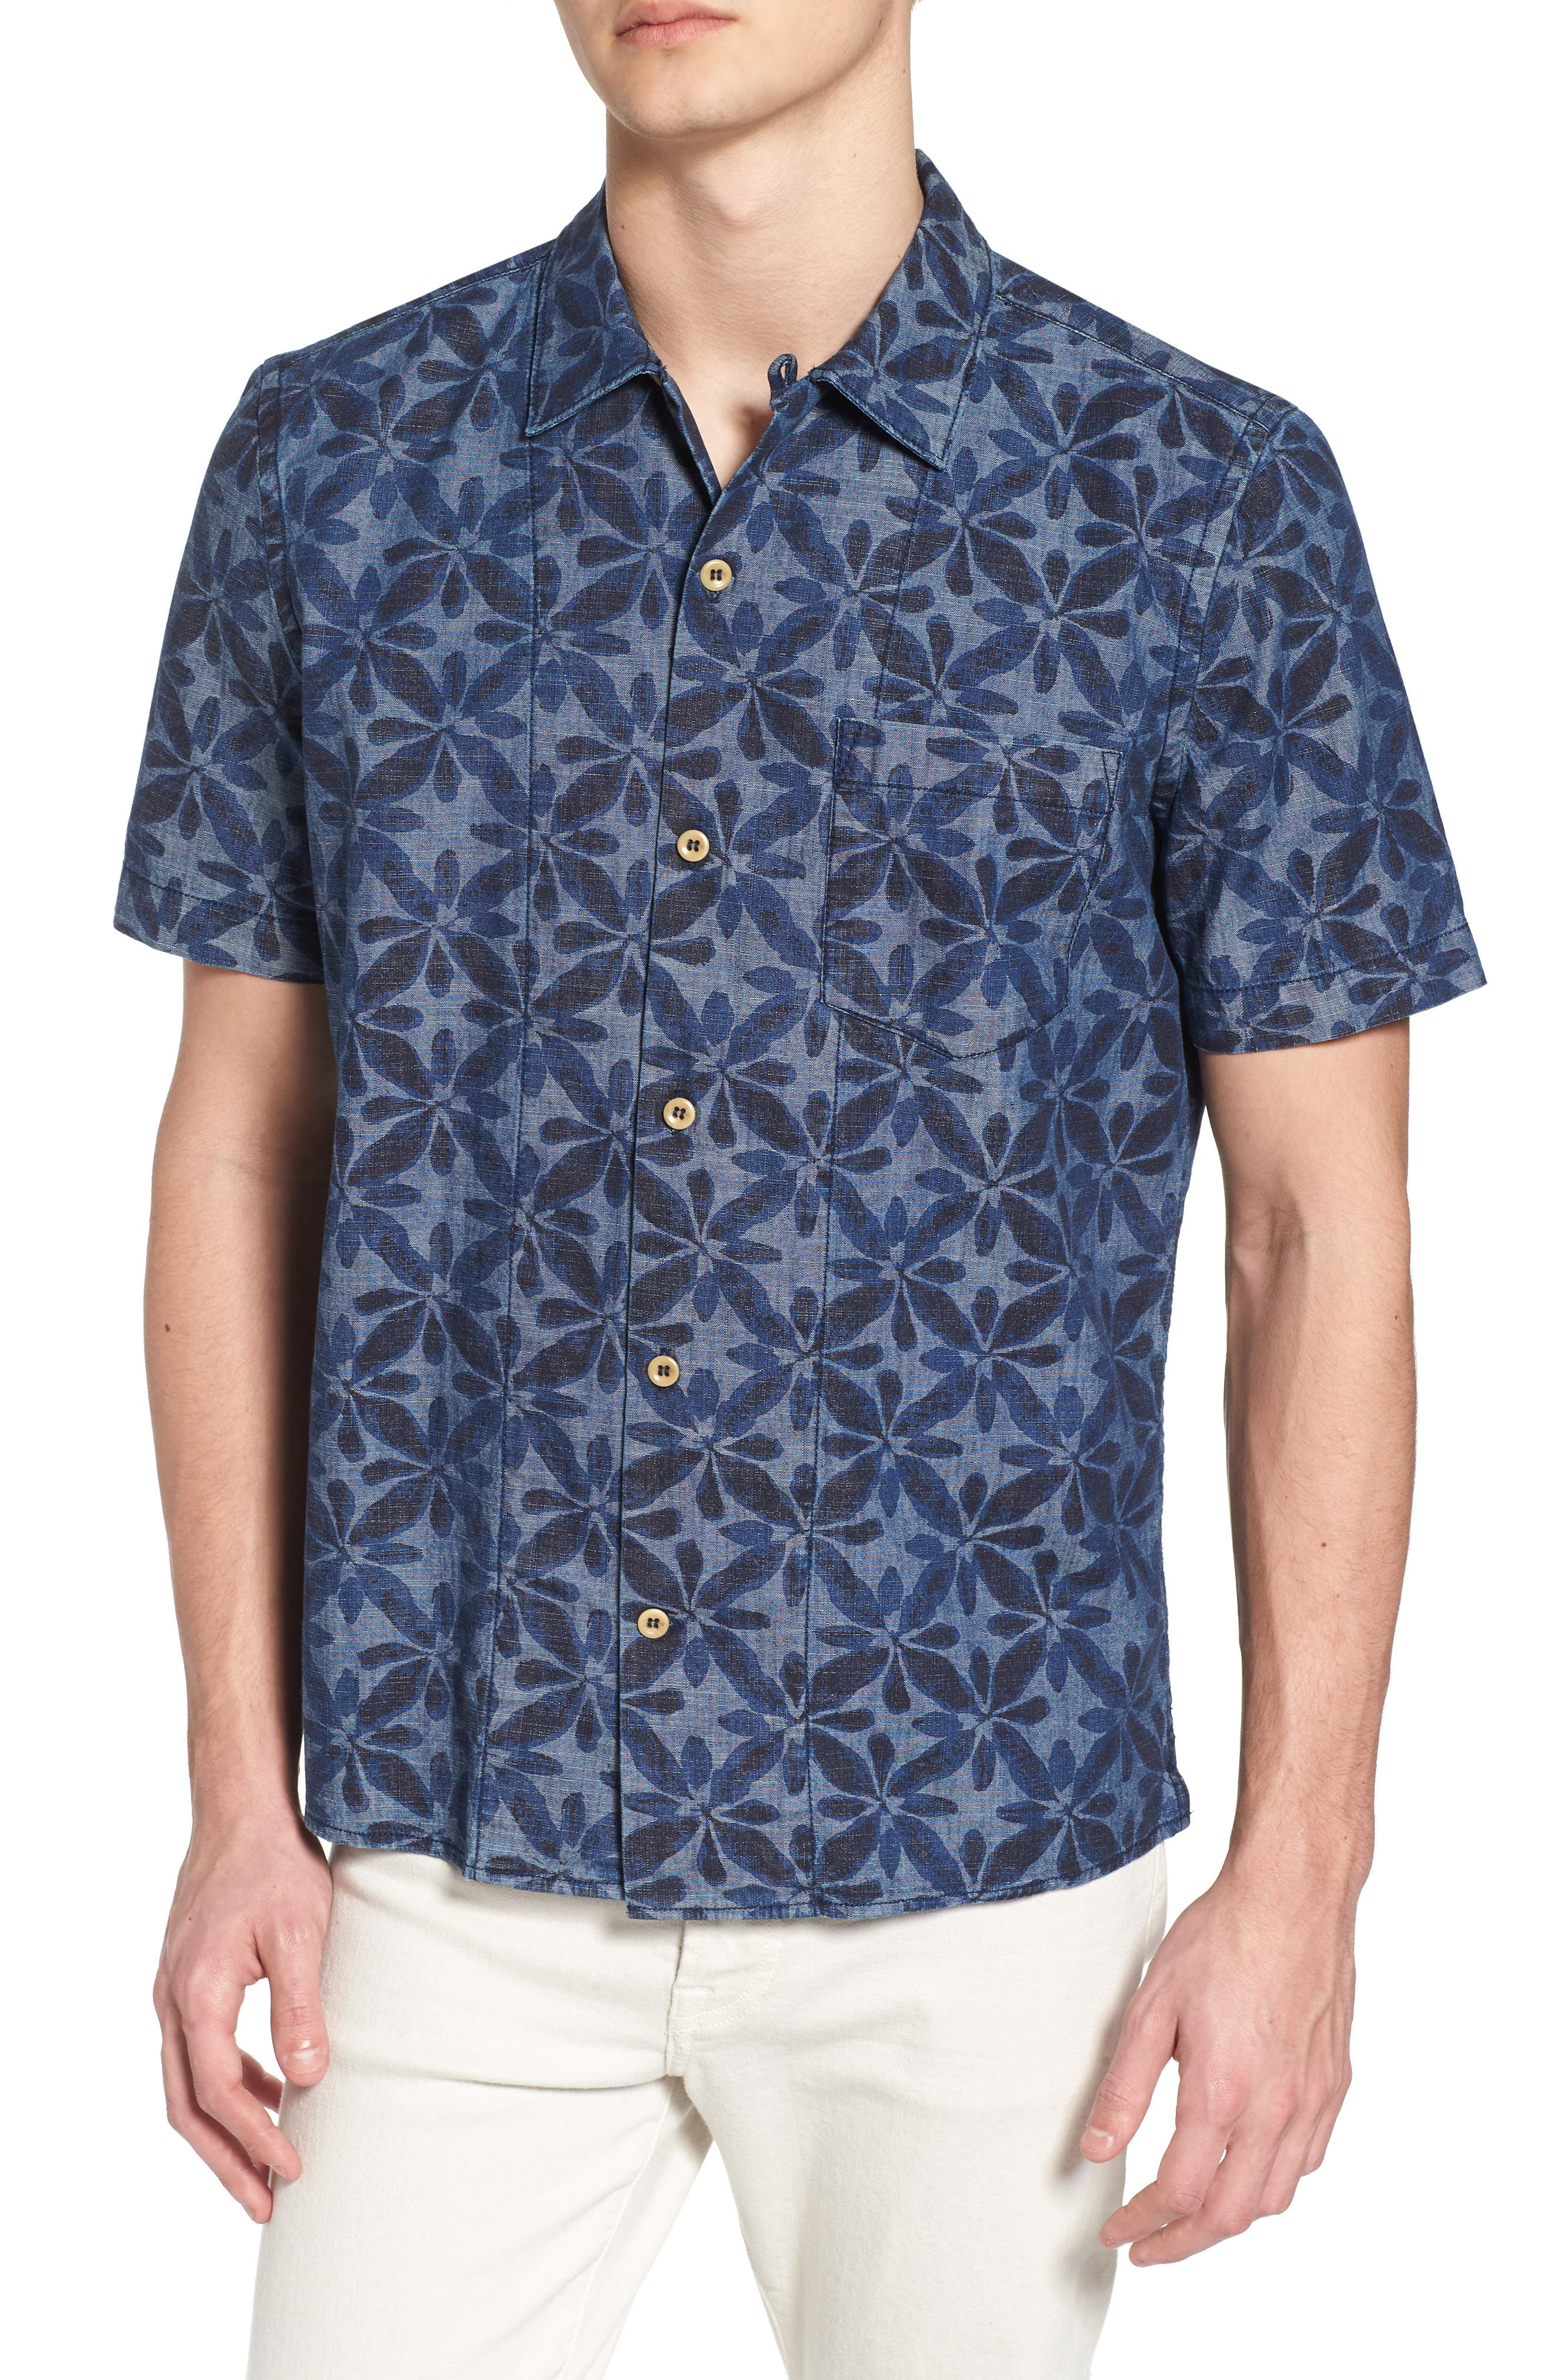 Franju Floral Slim Fit Woven Shirt,                         Main,                         color, Rinse And Softener